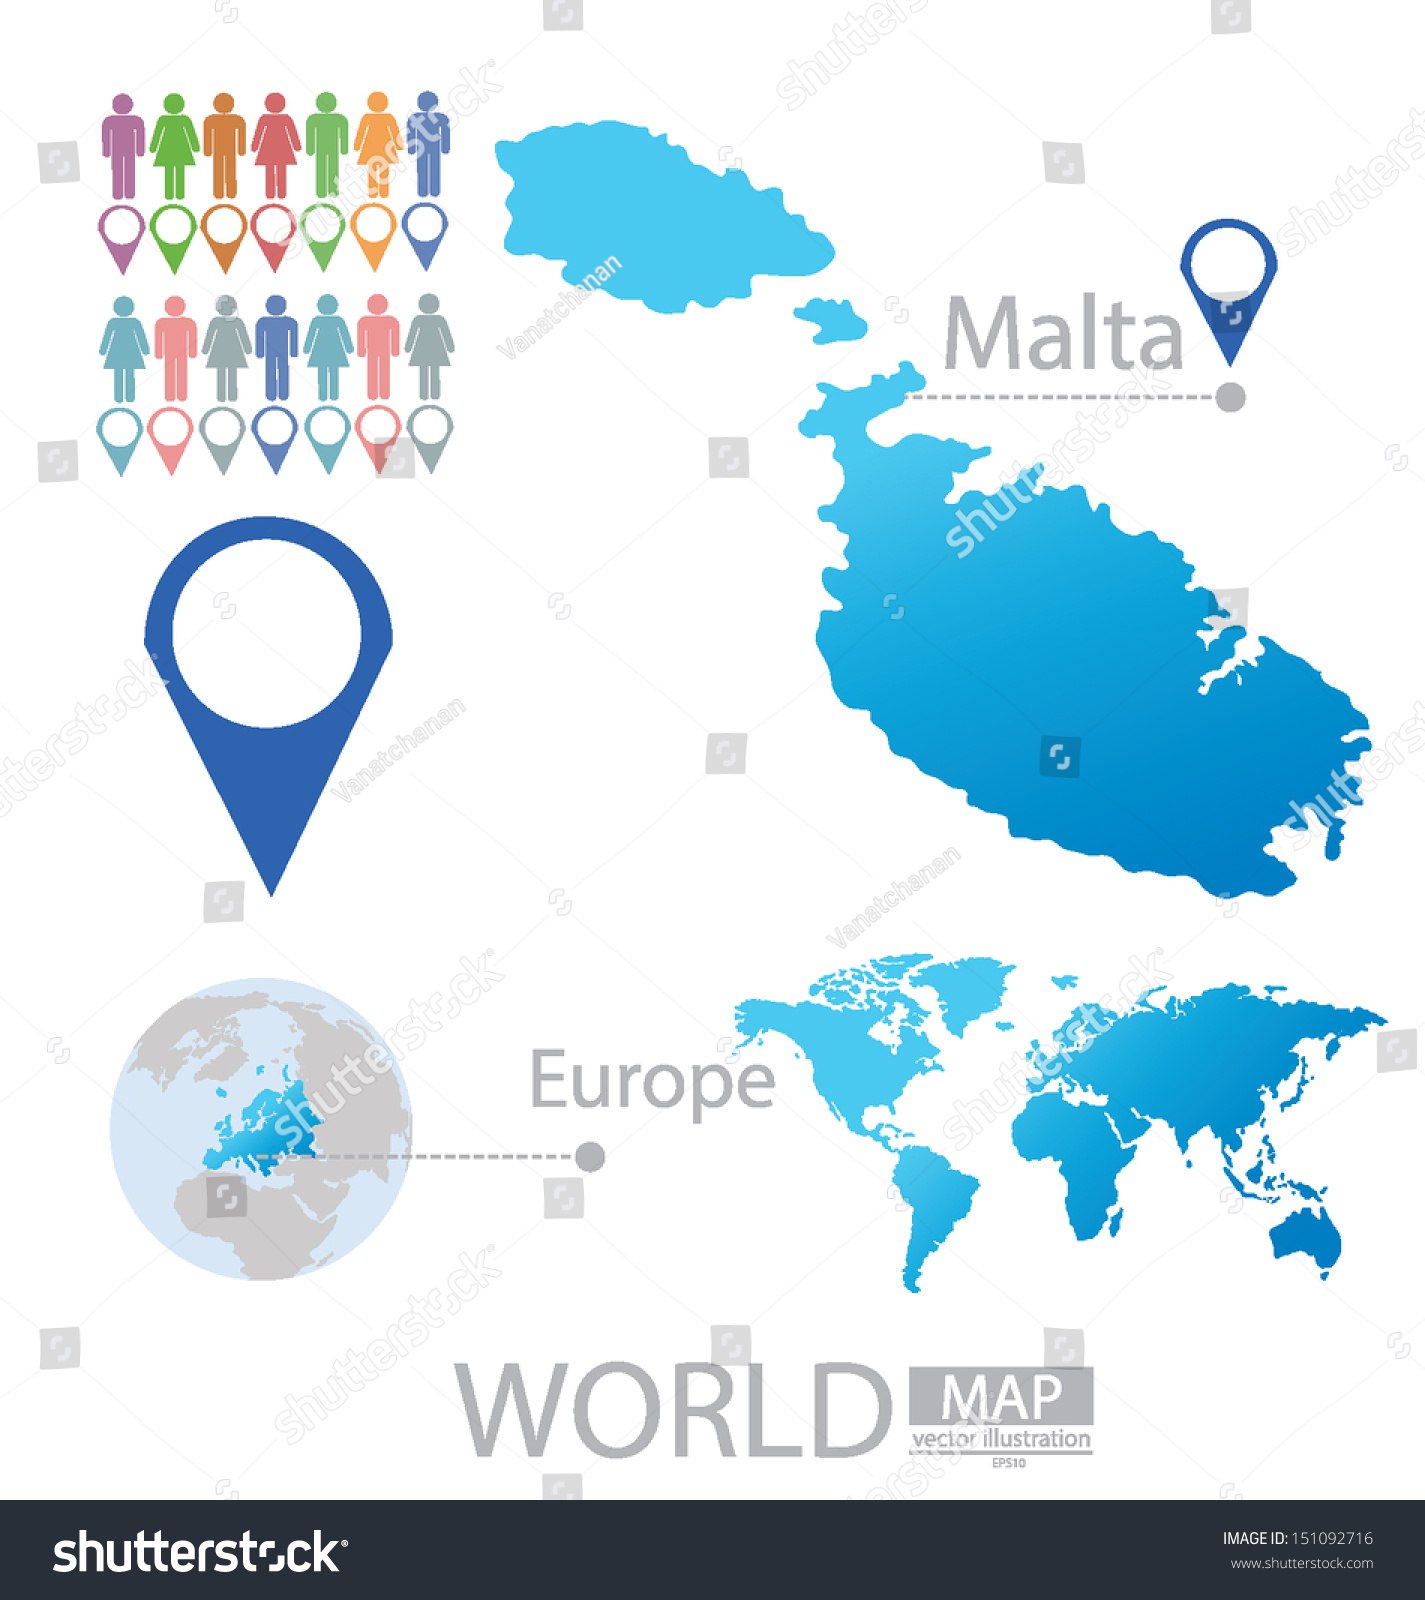 Malta On Map Of Europe.Republic Malta Map Europe Modern Globe Stock Vector Royalty Free